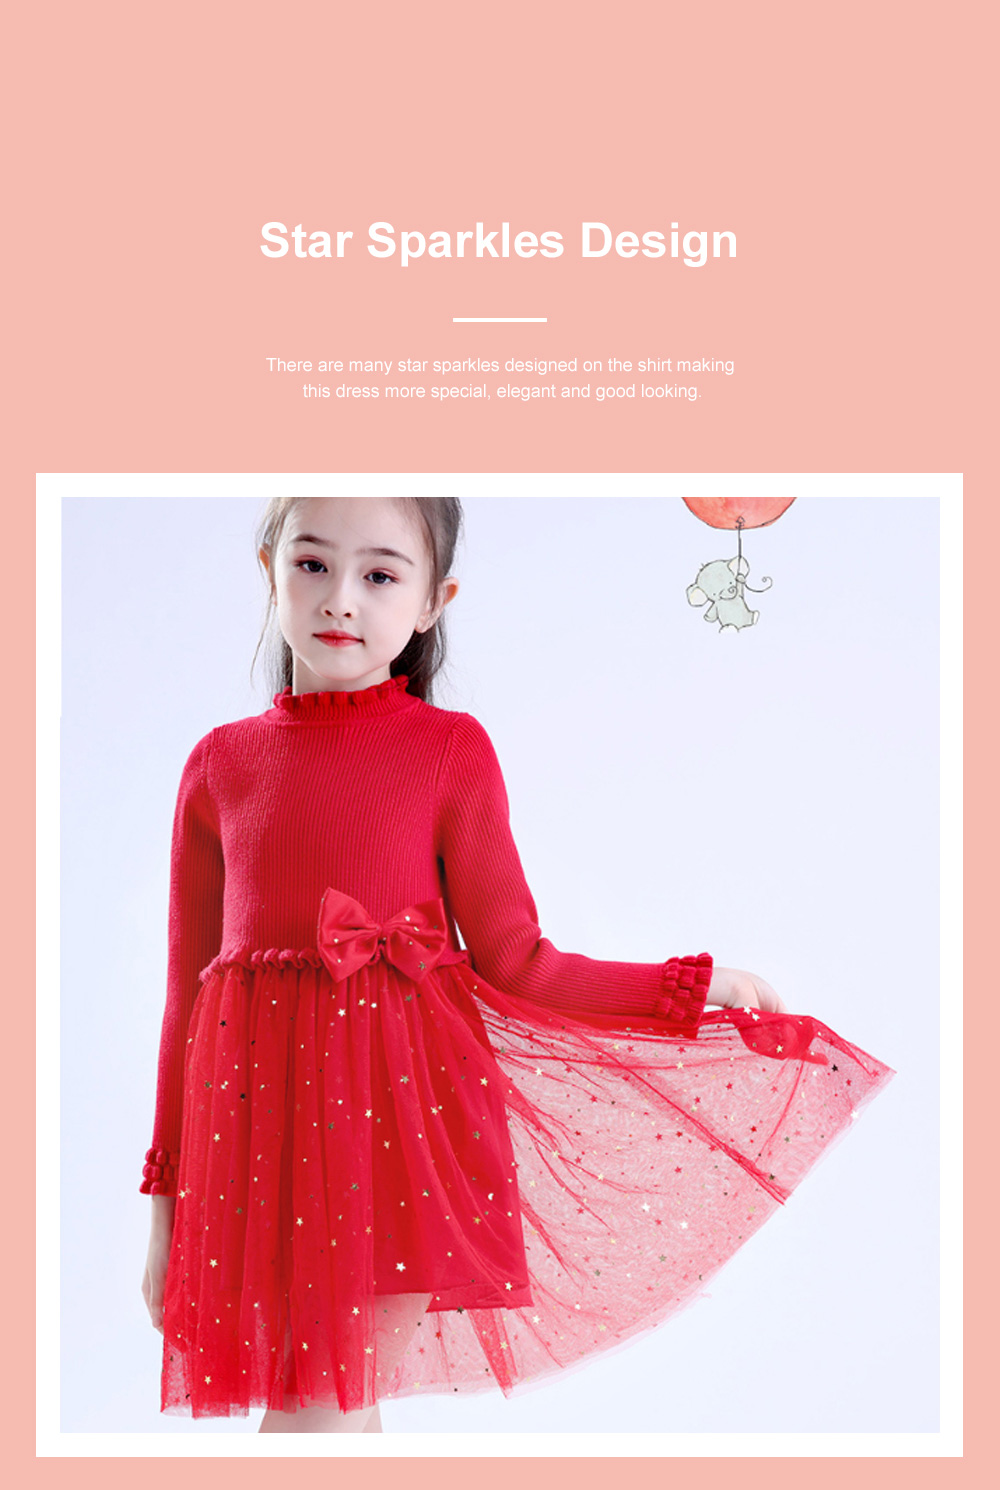 Fancy Elegant Winter Spring Autumn Children Girls Long-sleeve Sweater Dress Veil Princess Skirt with Star Sparkle Bowknot Decoration 2